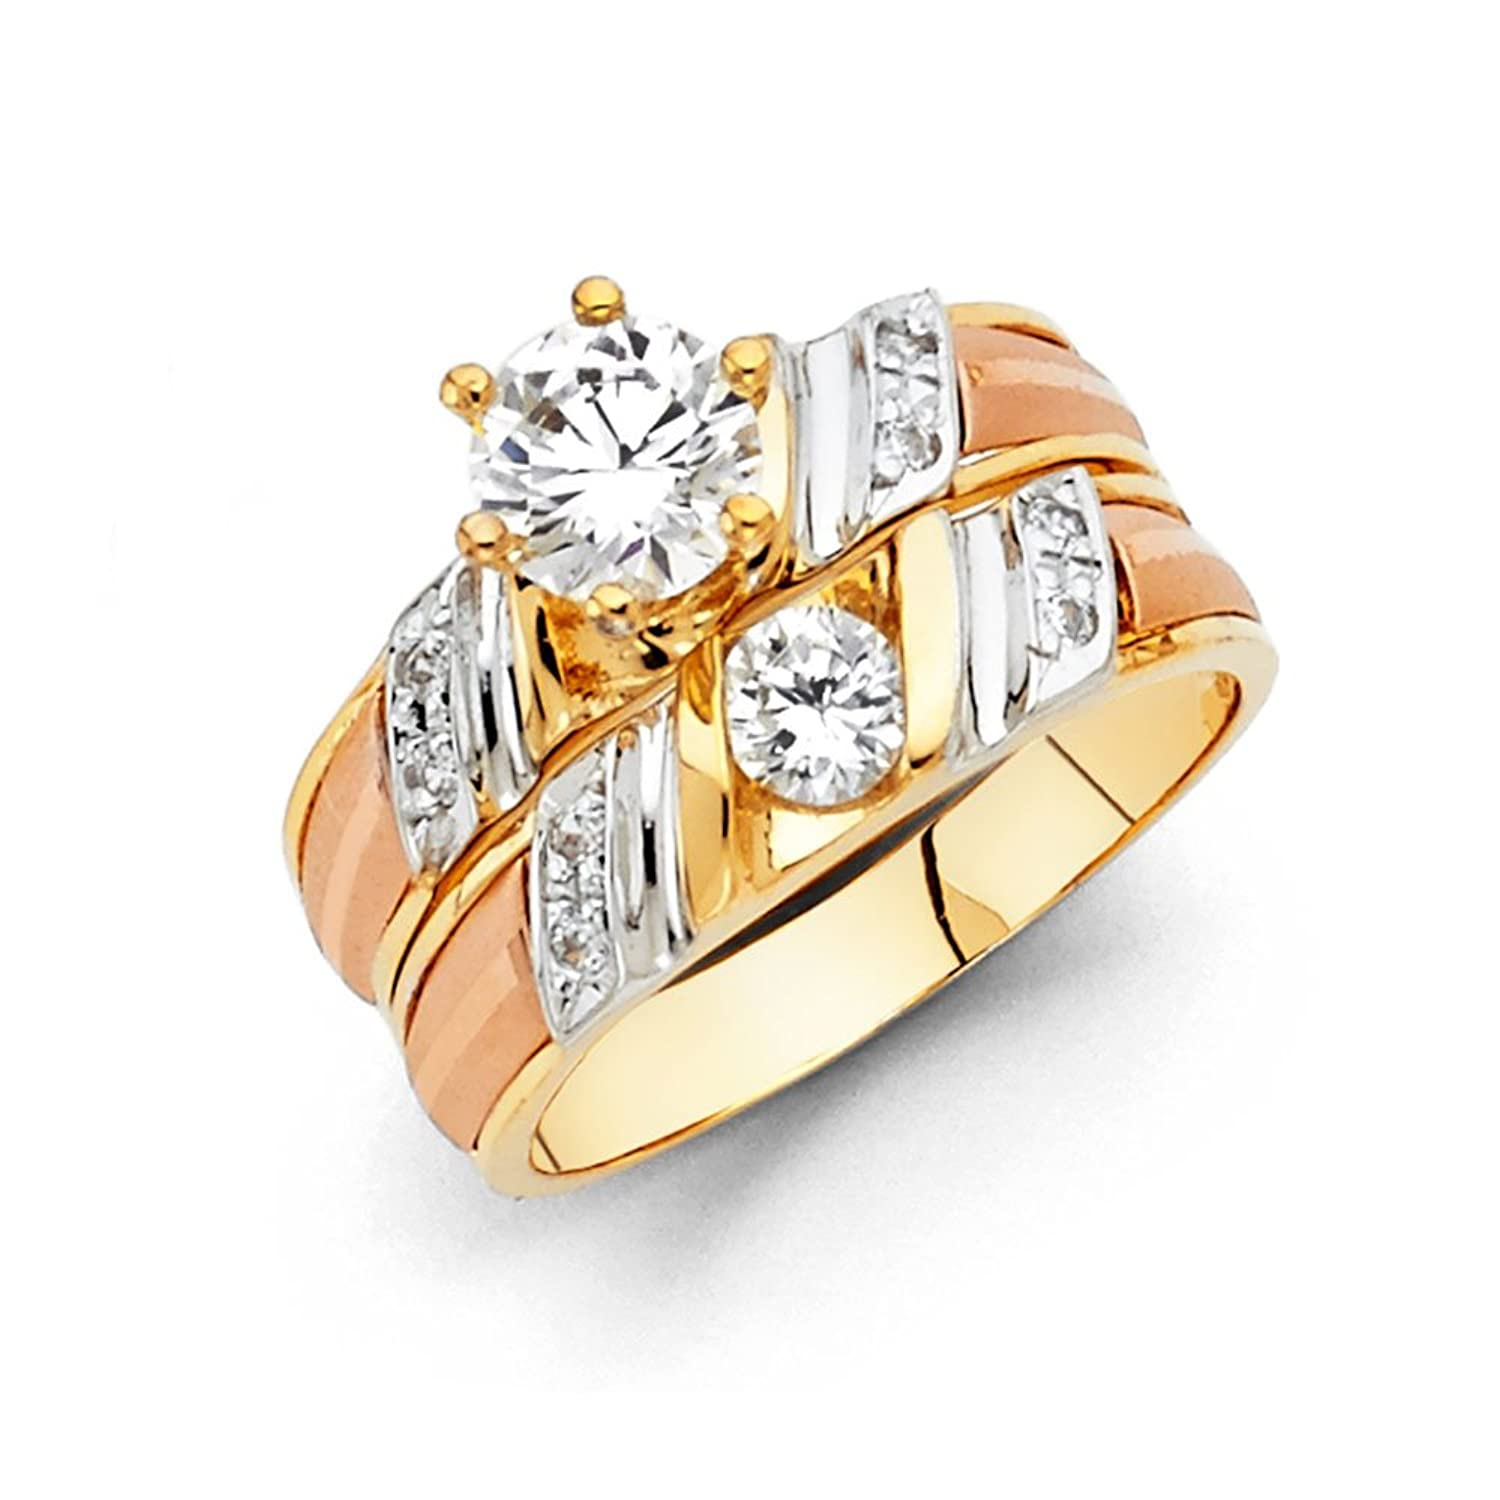 women jewelry steel round style men gold for wedding products classic color size rings stainless luxusteel ring gift